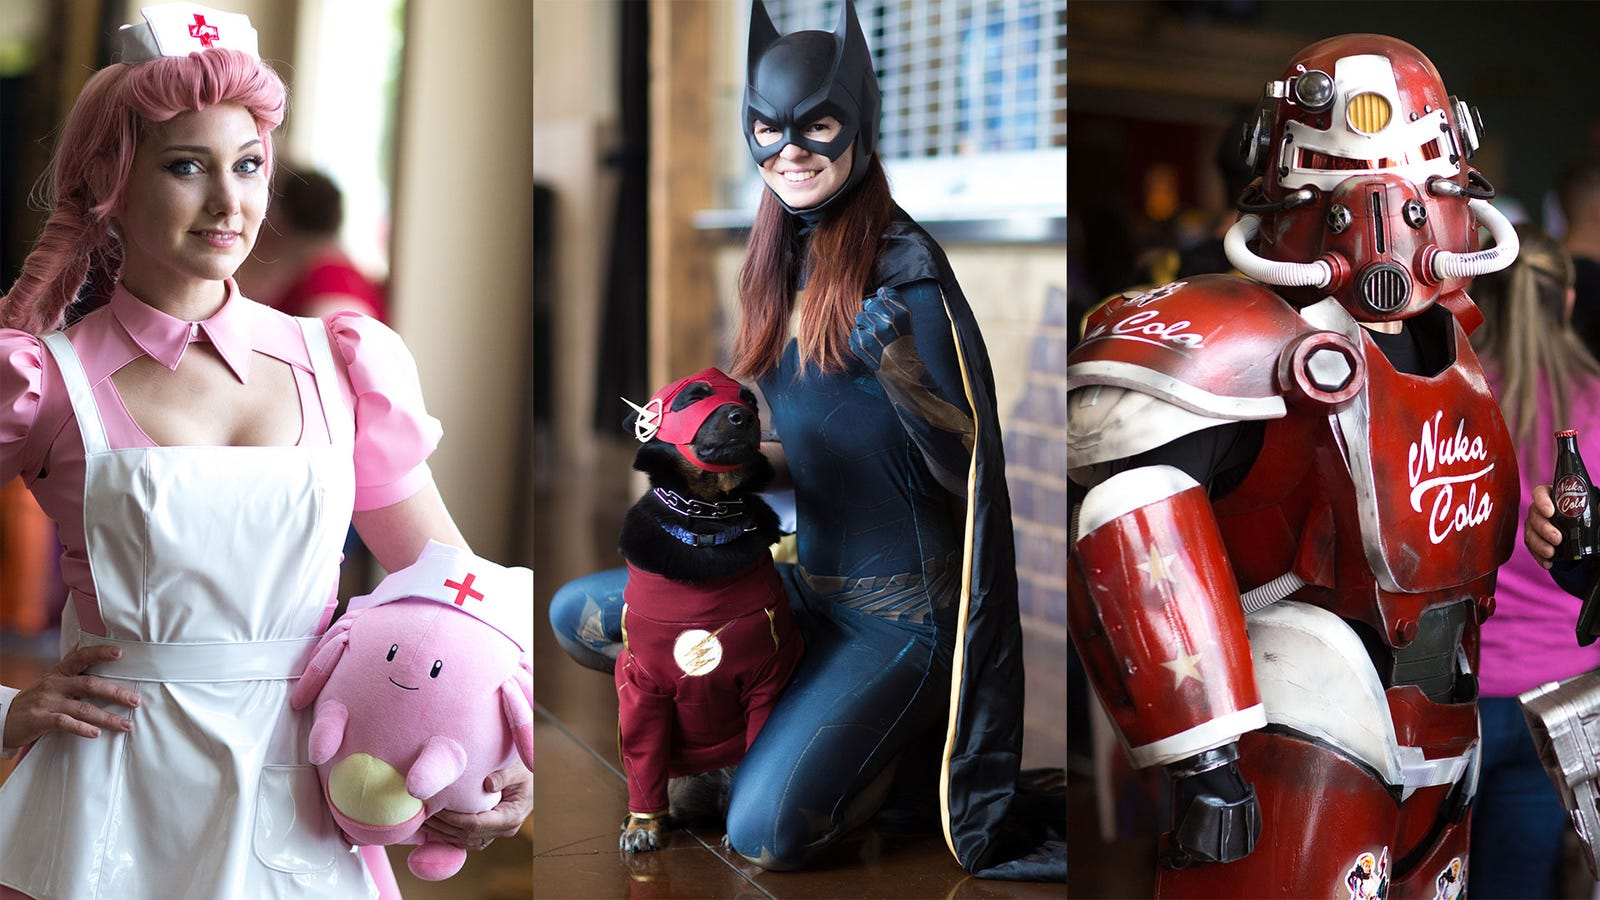 The Best Cosplay From Greater Austin Comic Con 2018